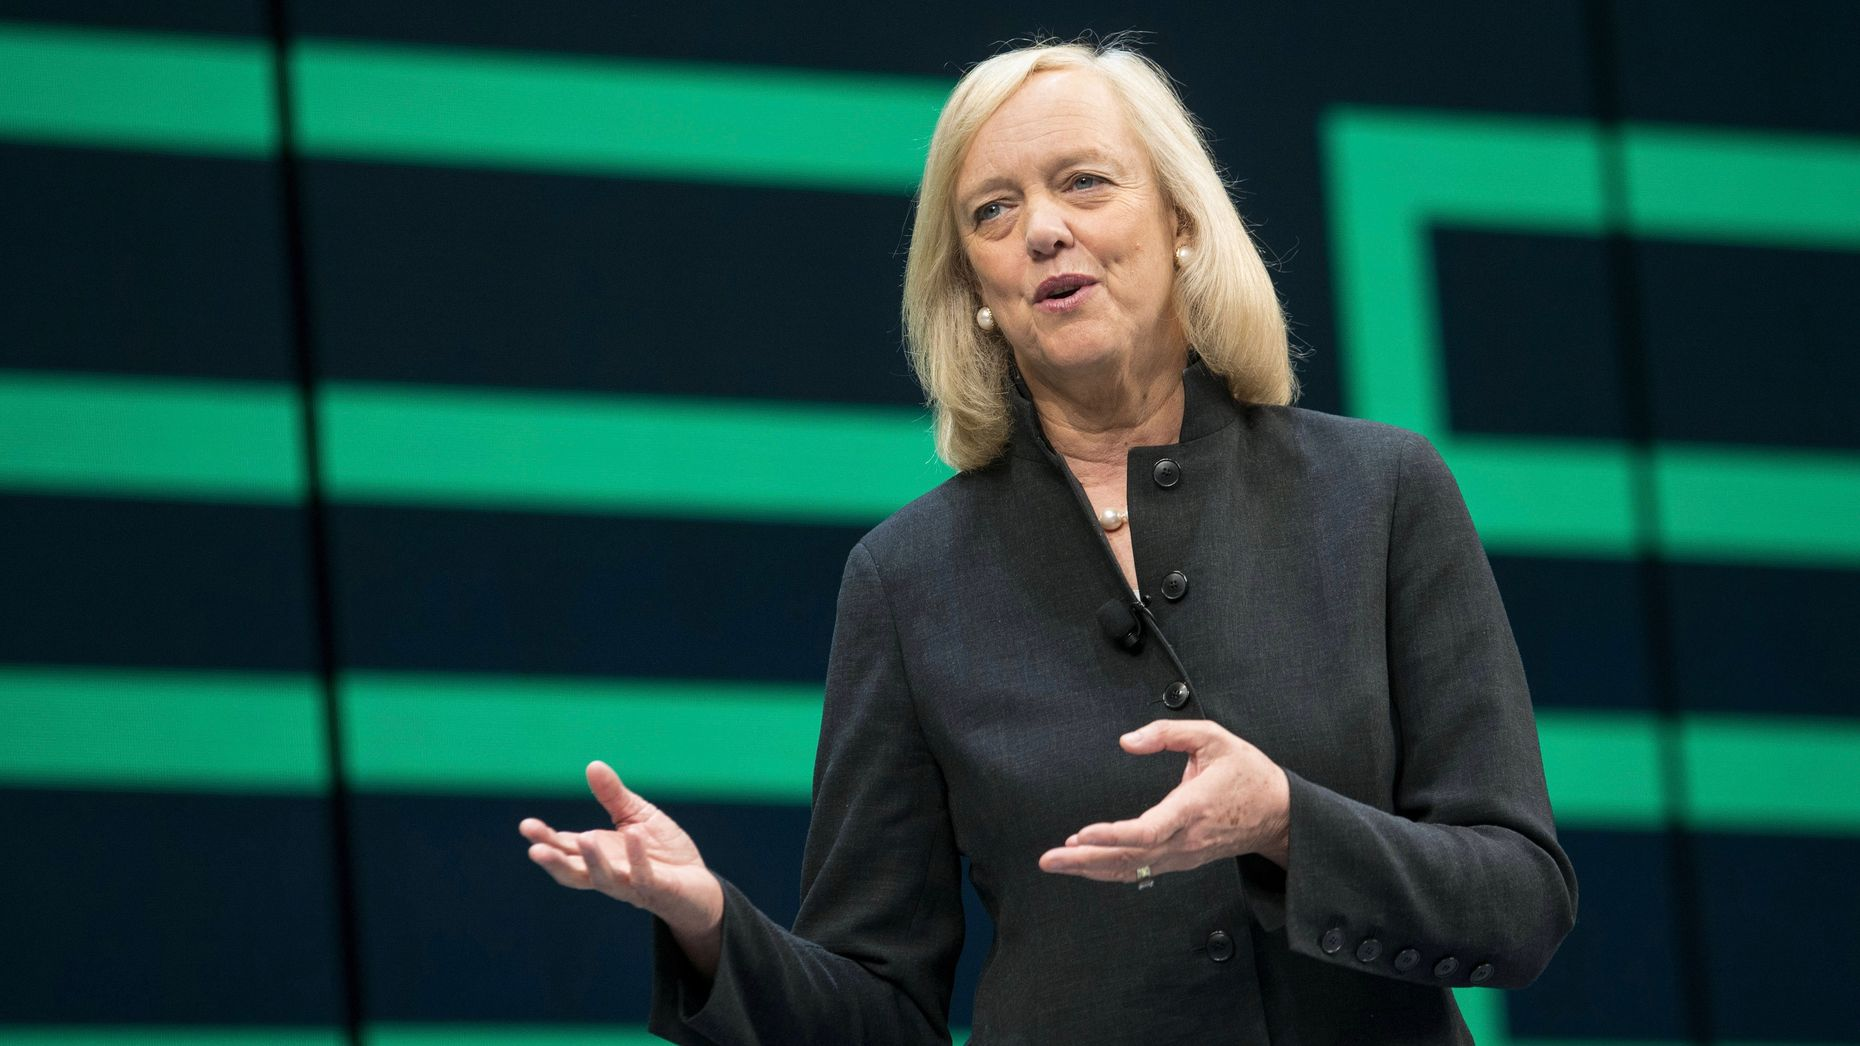 Hewlett Packard Enterprise CEO Meg Whitman. Photo by Bloomberg.